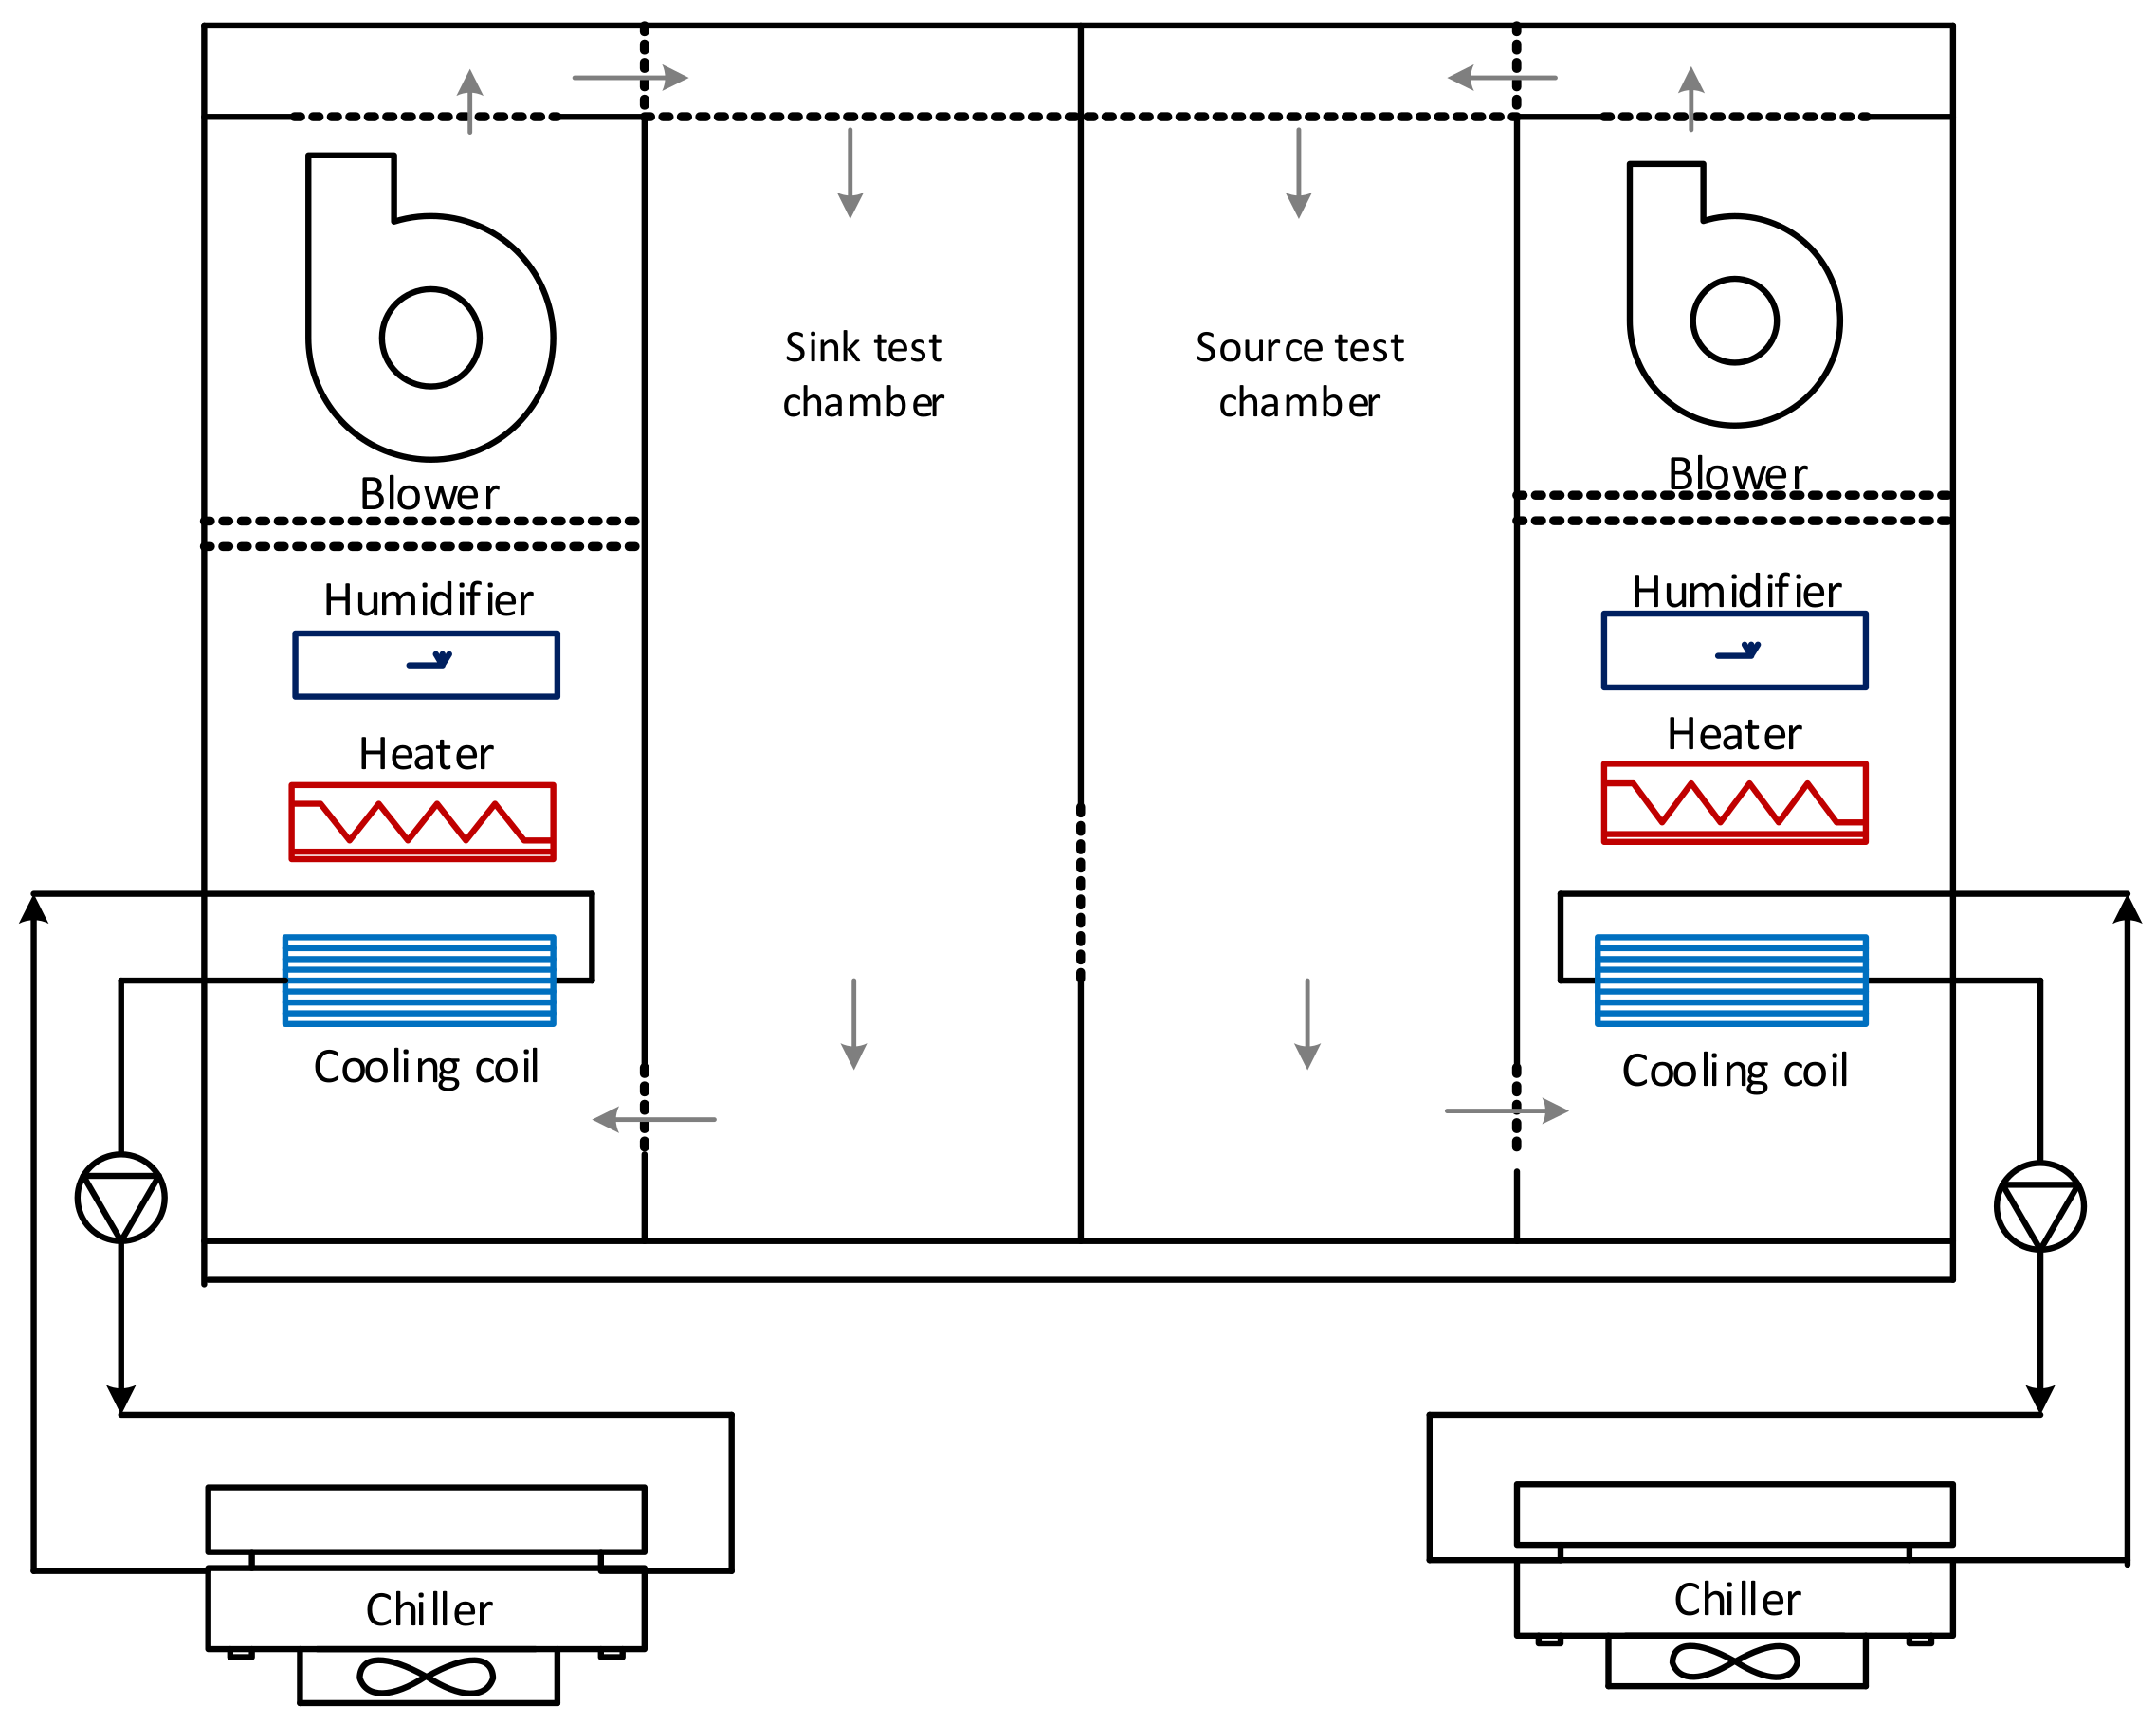 Energies Free Full Text Modeling And Simulation Performance Evaluation Of A Proposed Calorimeter For Testing A Heat Pump System Html